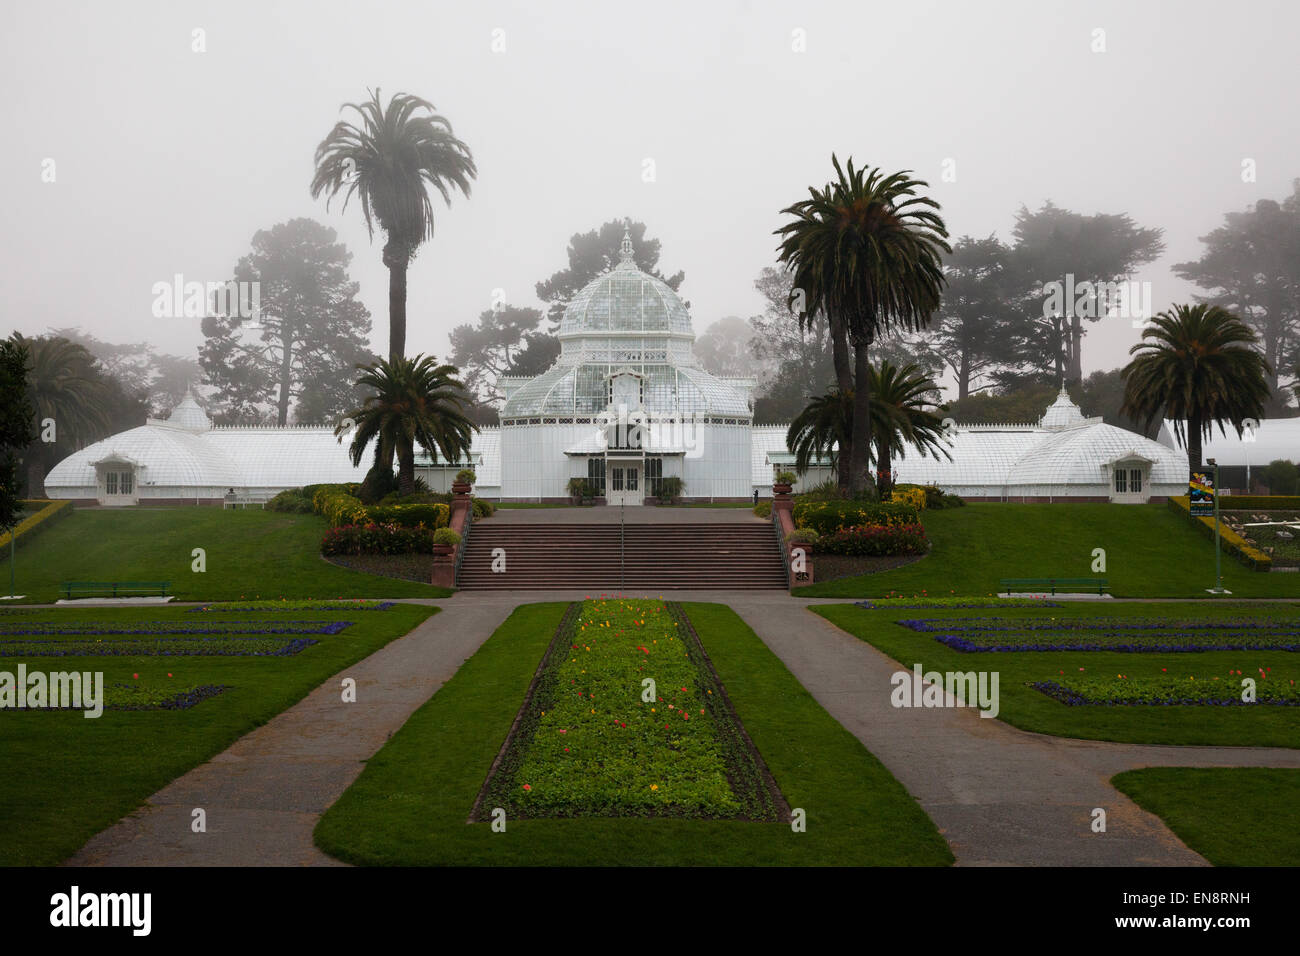 The Conservatory of Flowers in Golden Gate Park in San Francisco California on a foggy day. - Stock Image